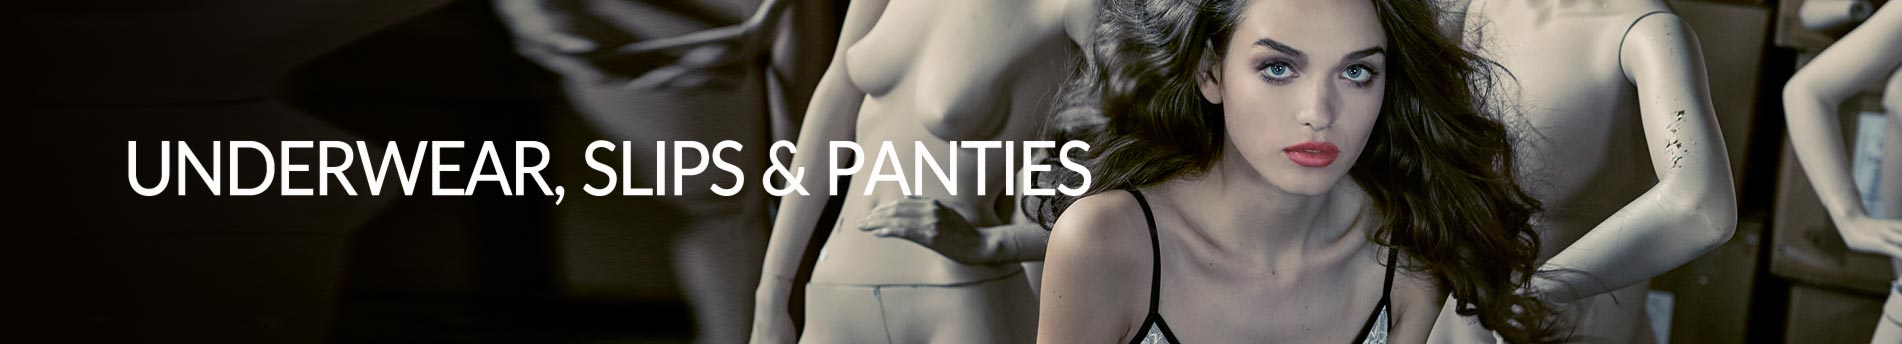 underwear, slips & panties